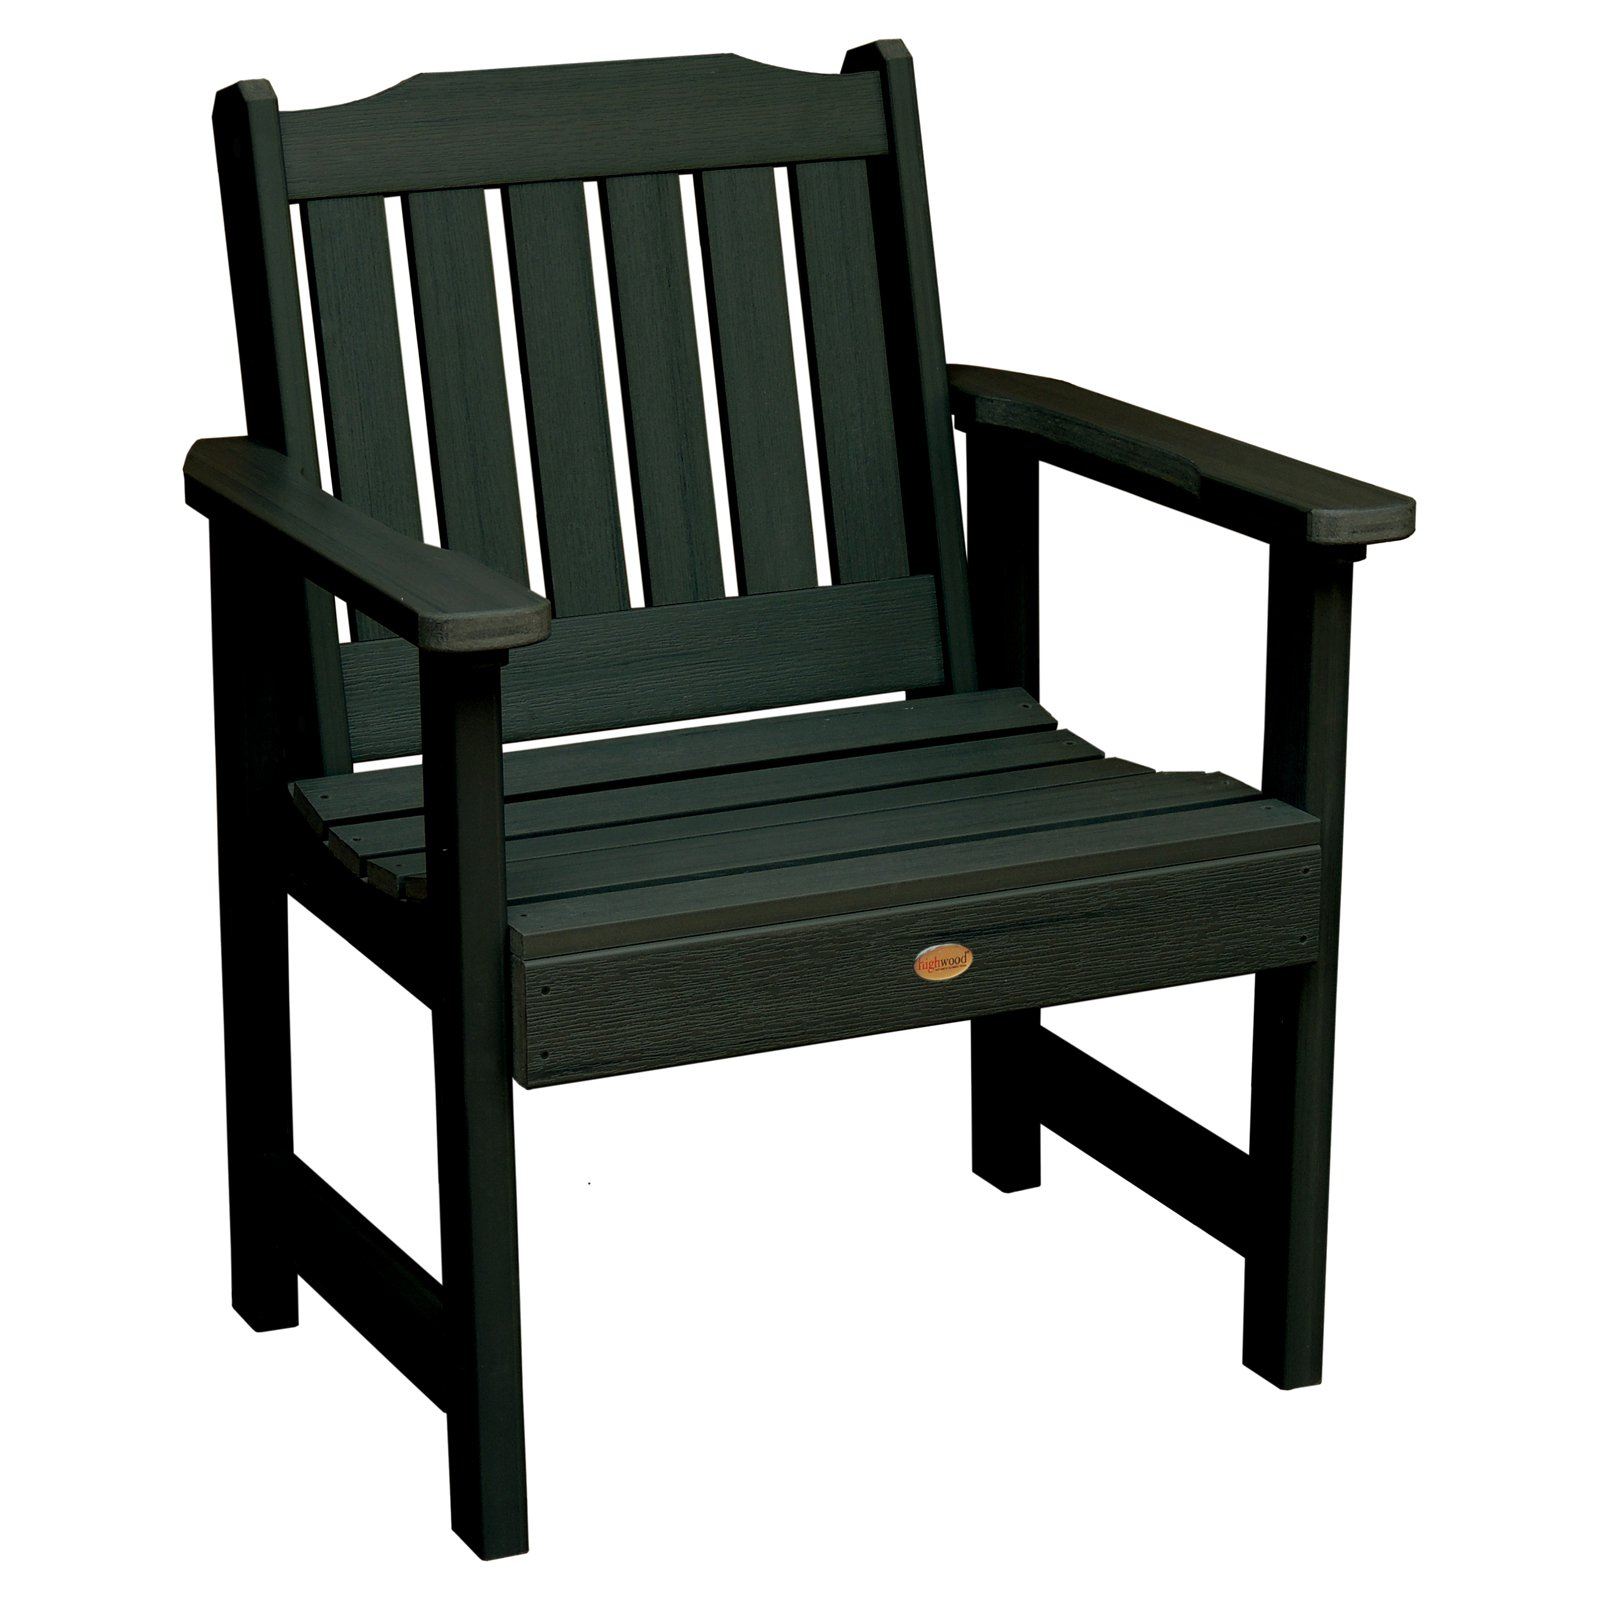 highwood® Lehigh Recycled Plastic Garden Lounge Chair